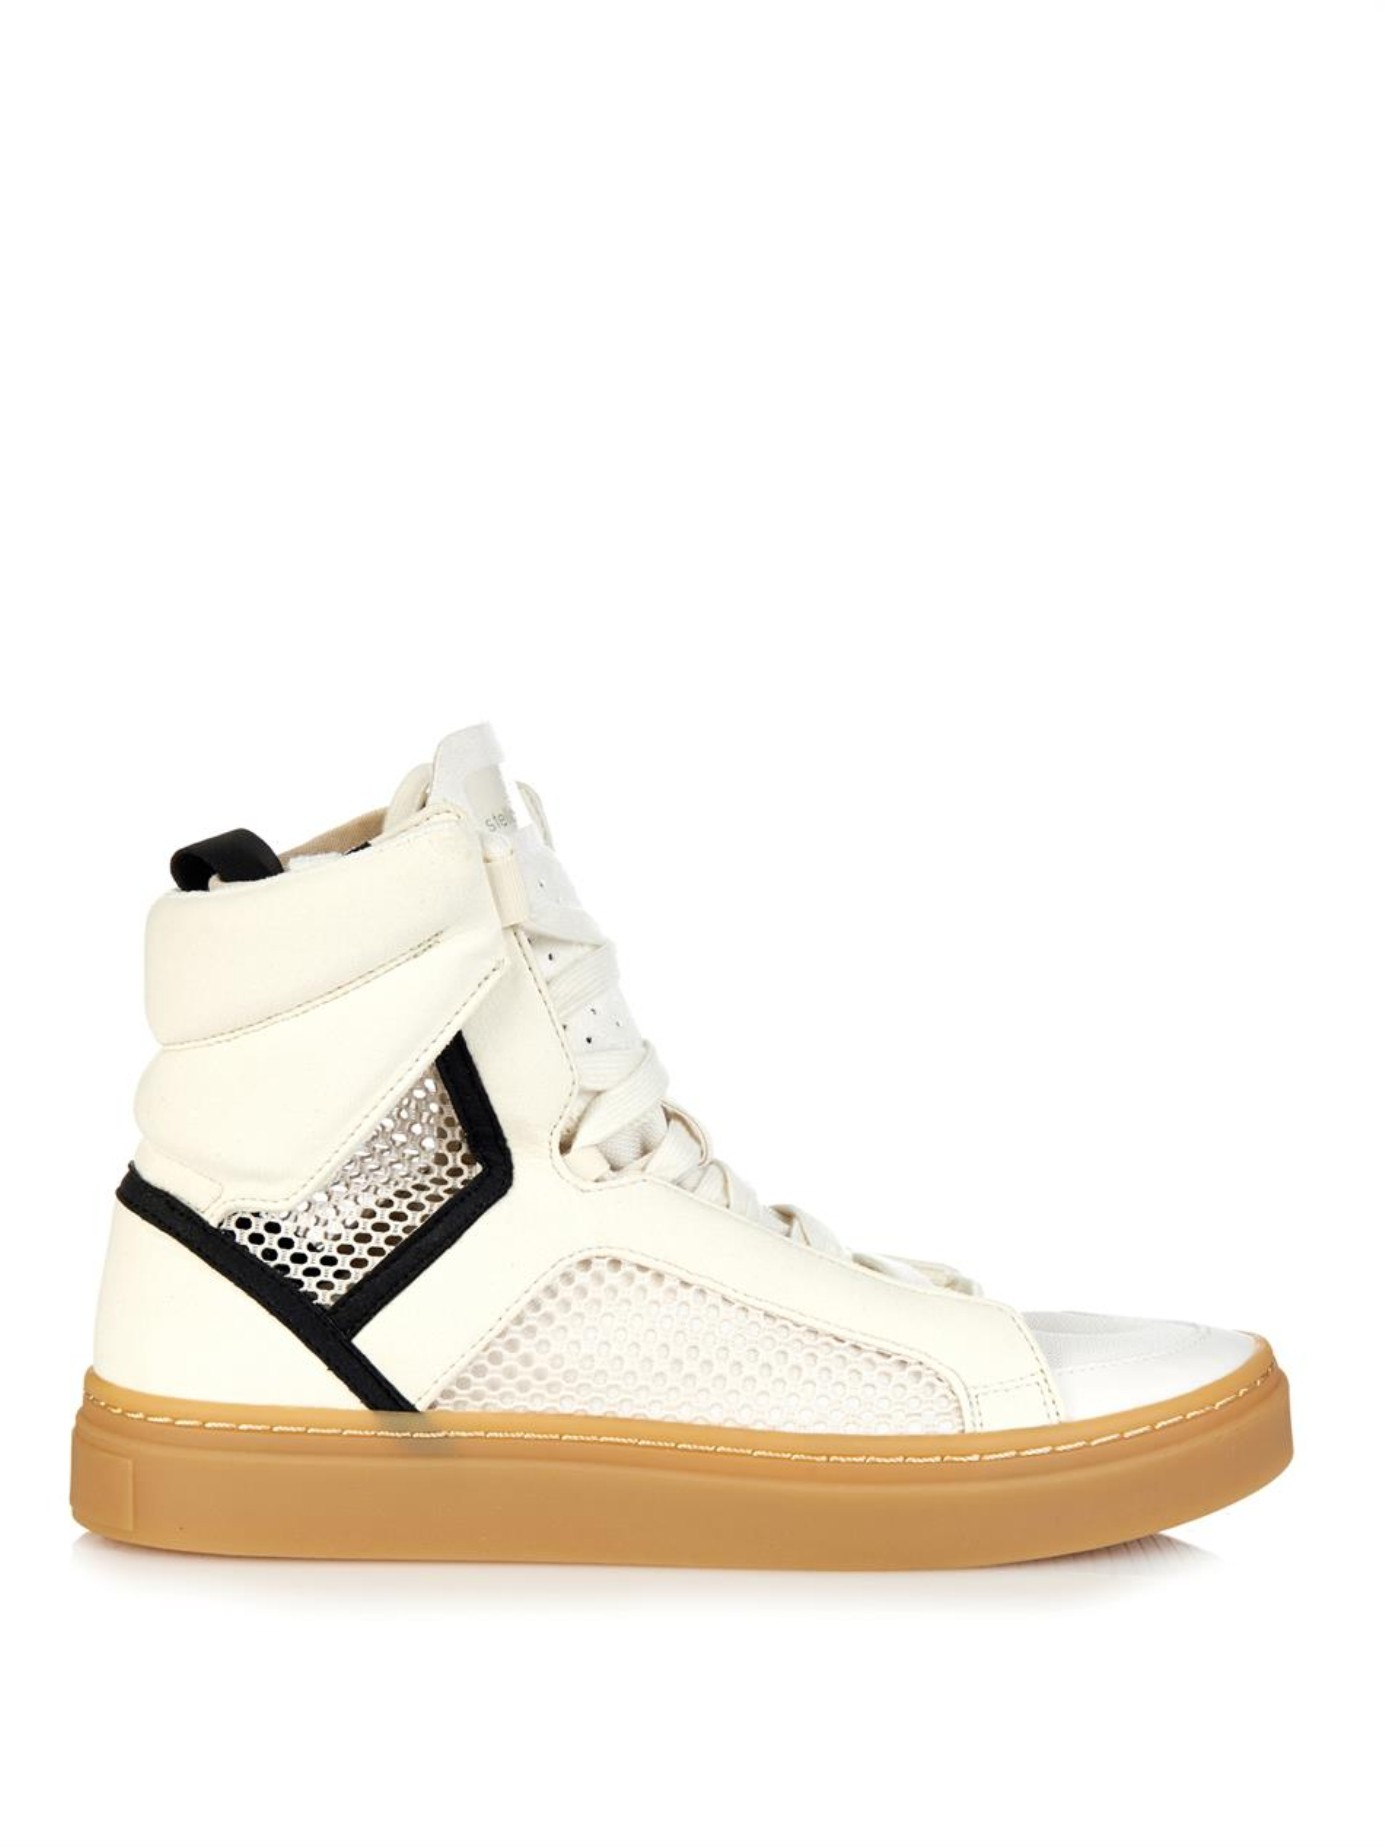 Adidas by Stella McCartney Lyst asamina High Top Trainers en blanco